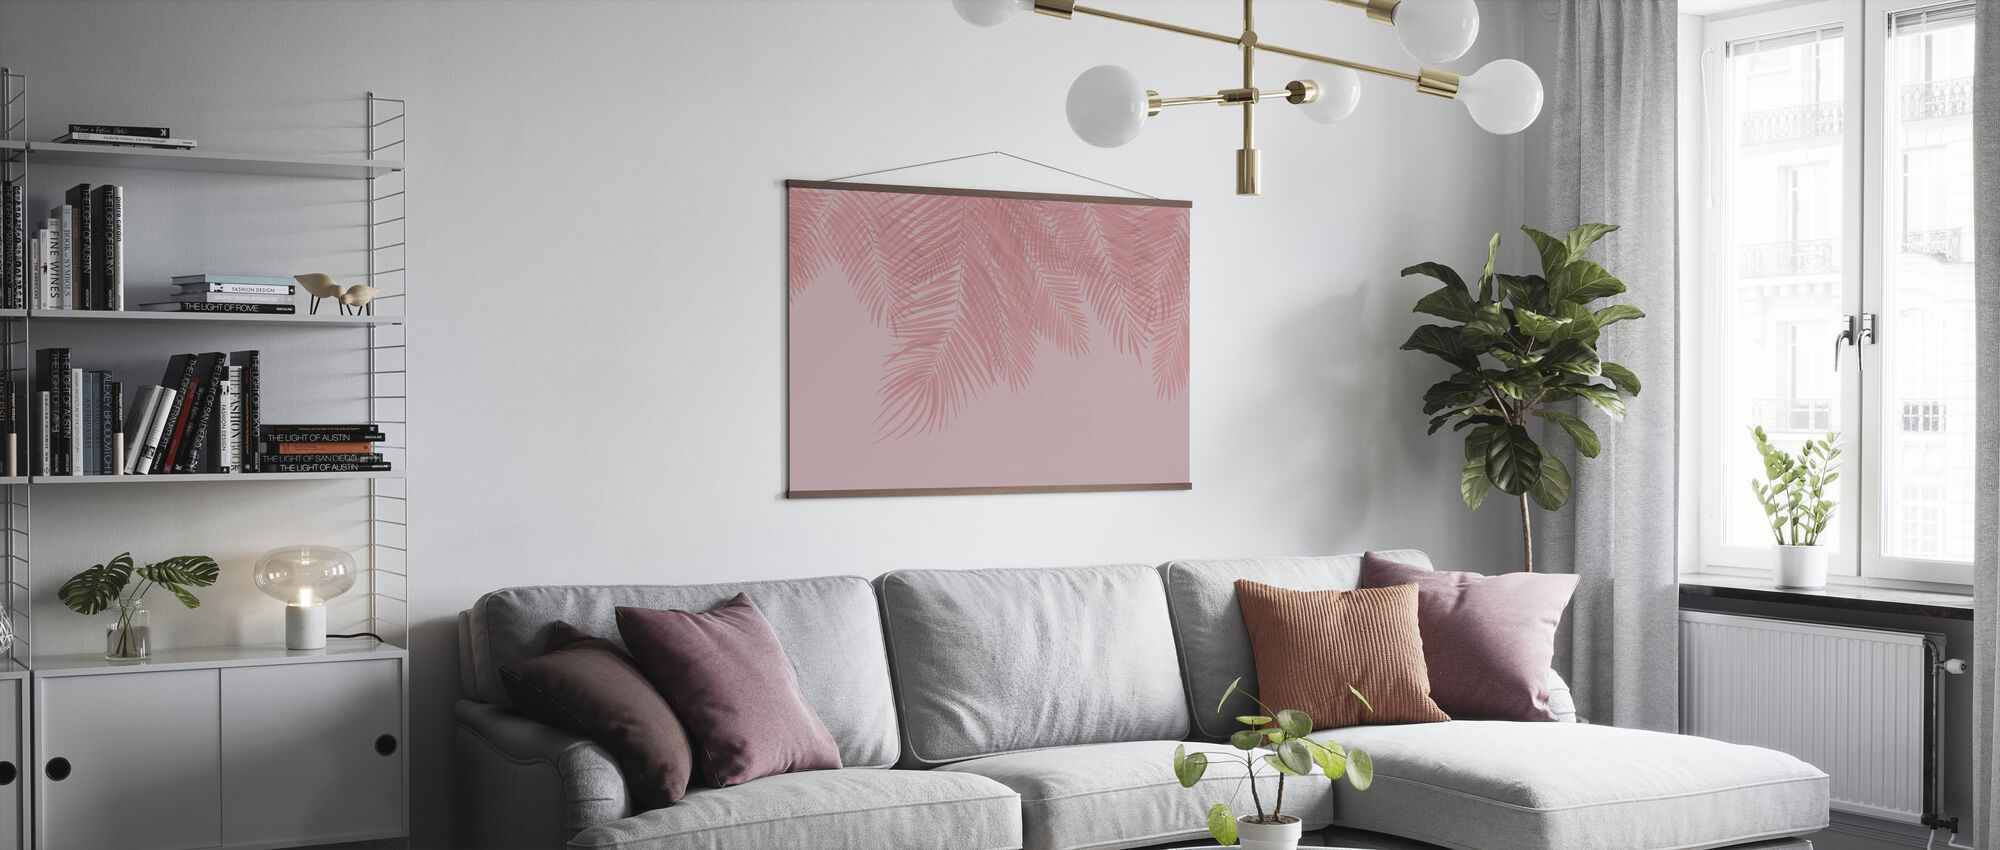 Hanging Palm Leaves - Pink - Poster - Living Room